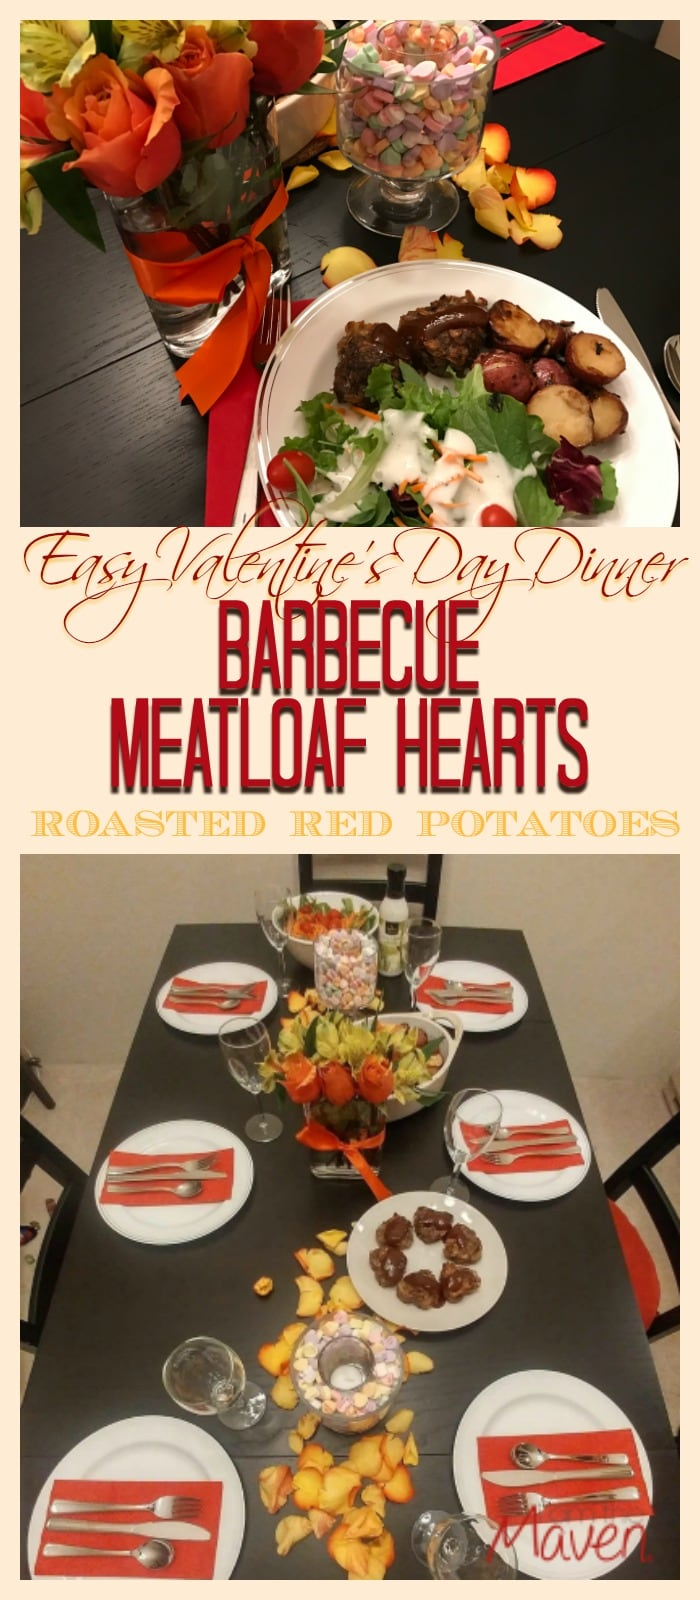 make an easy valentines day dinner with barbecue meatloaf hearts roasted red potatoes and green